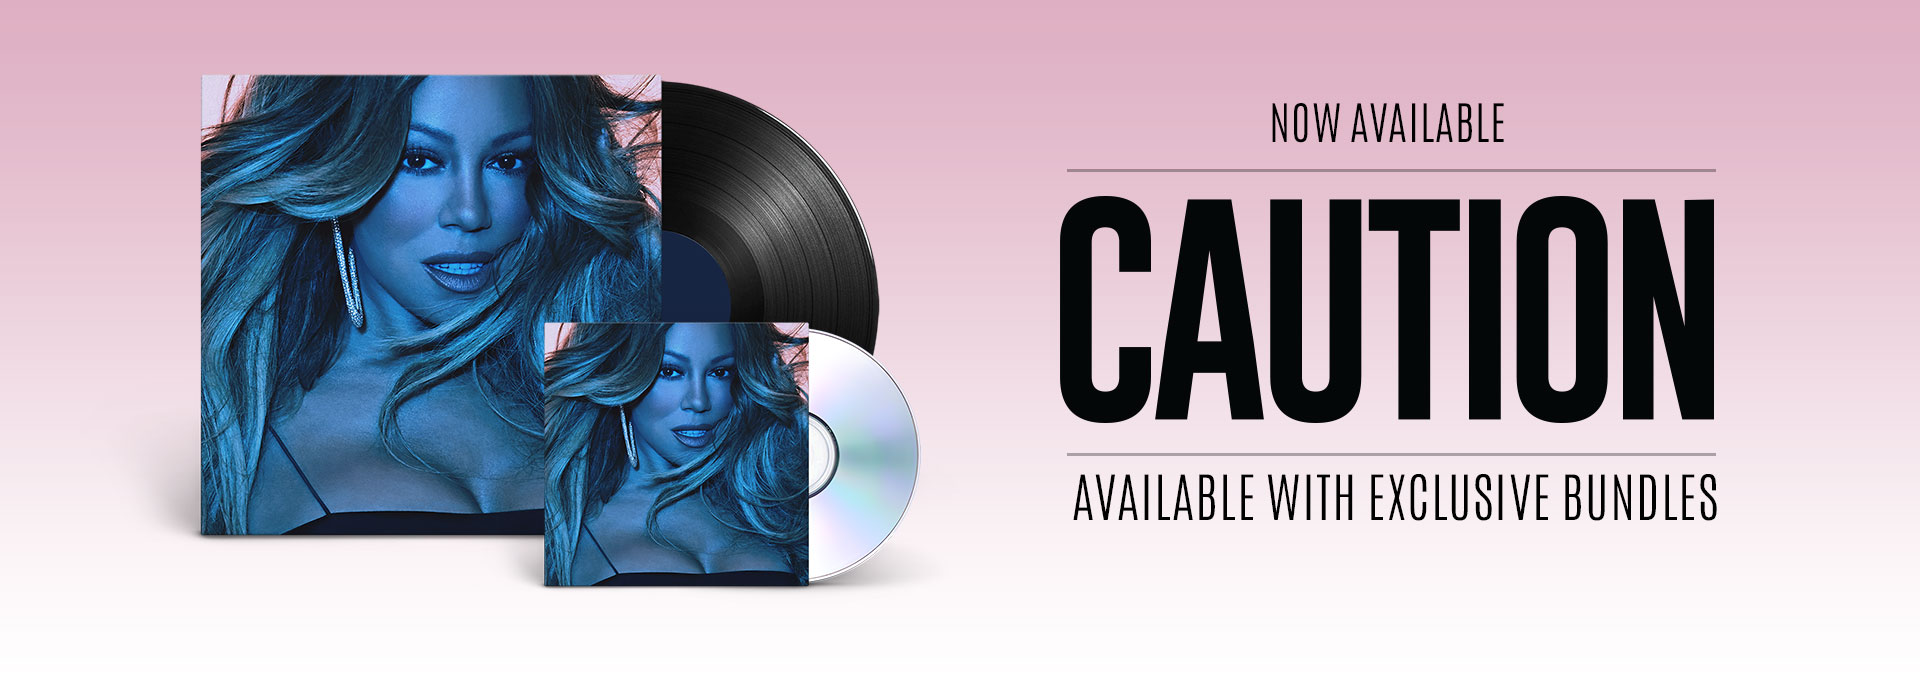 Shop the New Mariah Carey Album, Caution, Available Now!